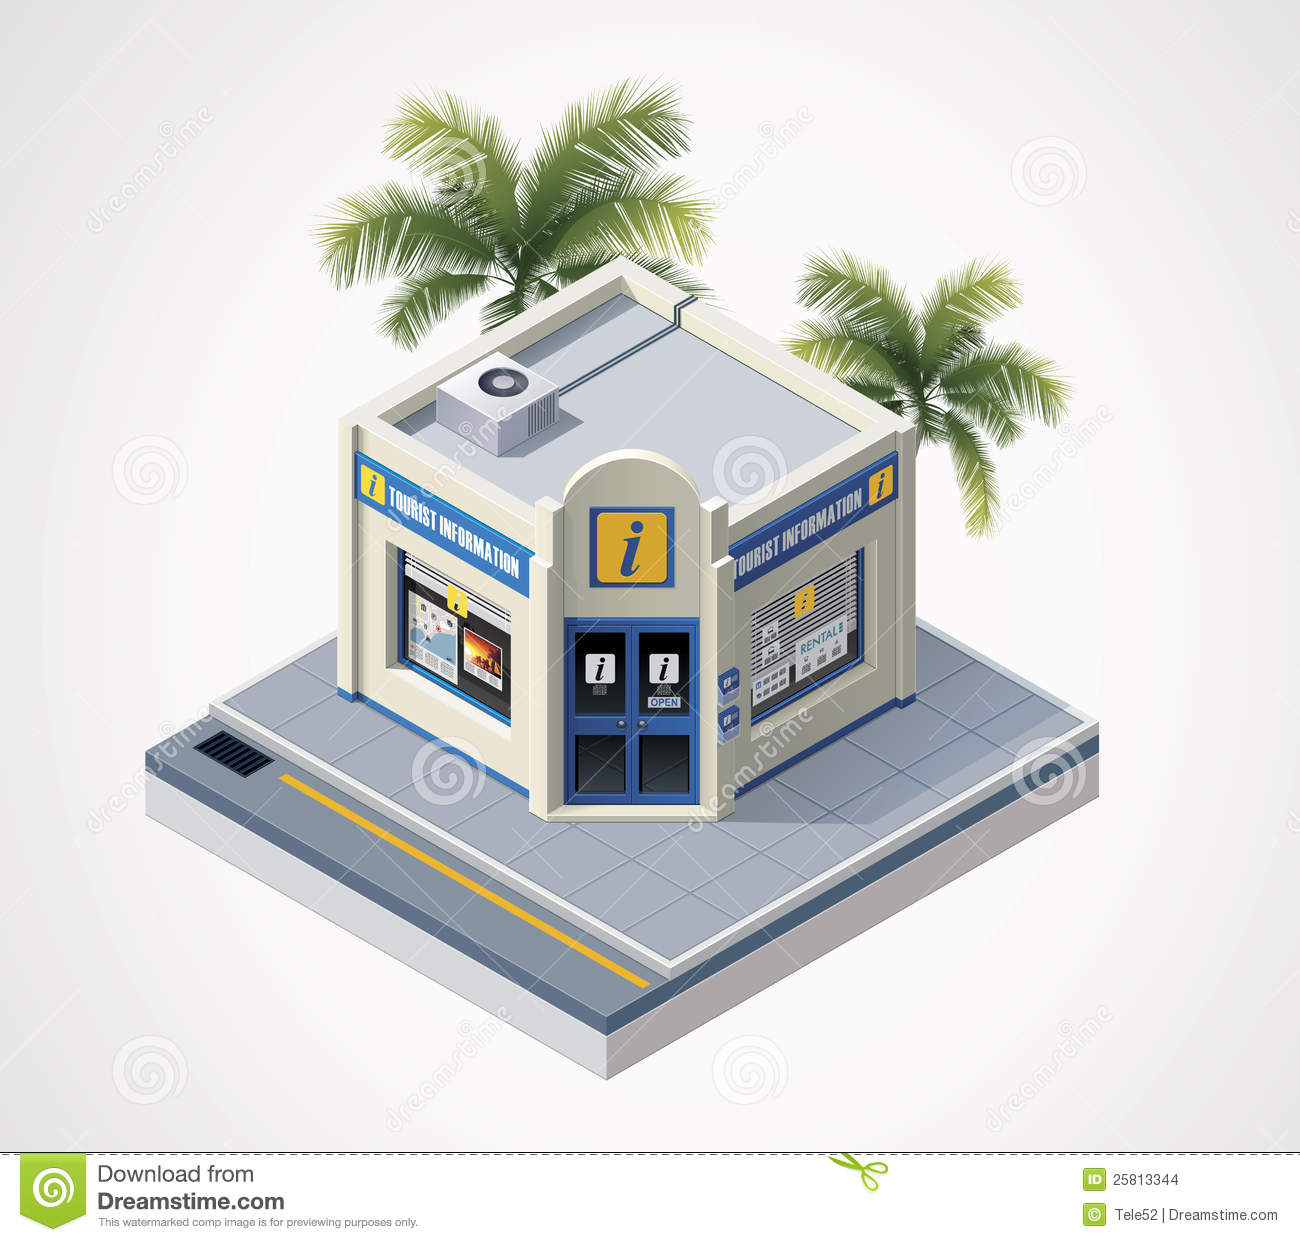 Detailed icon representing small tourist information office building.